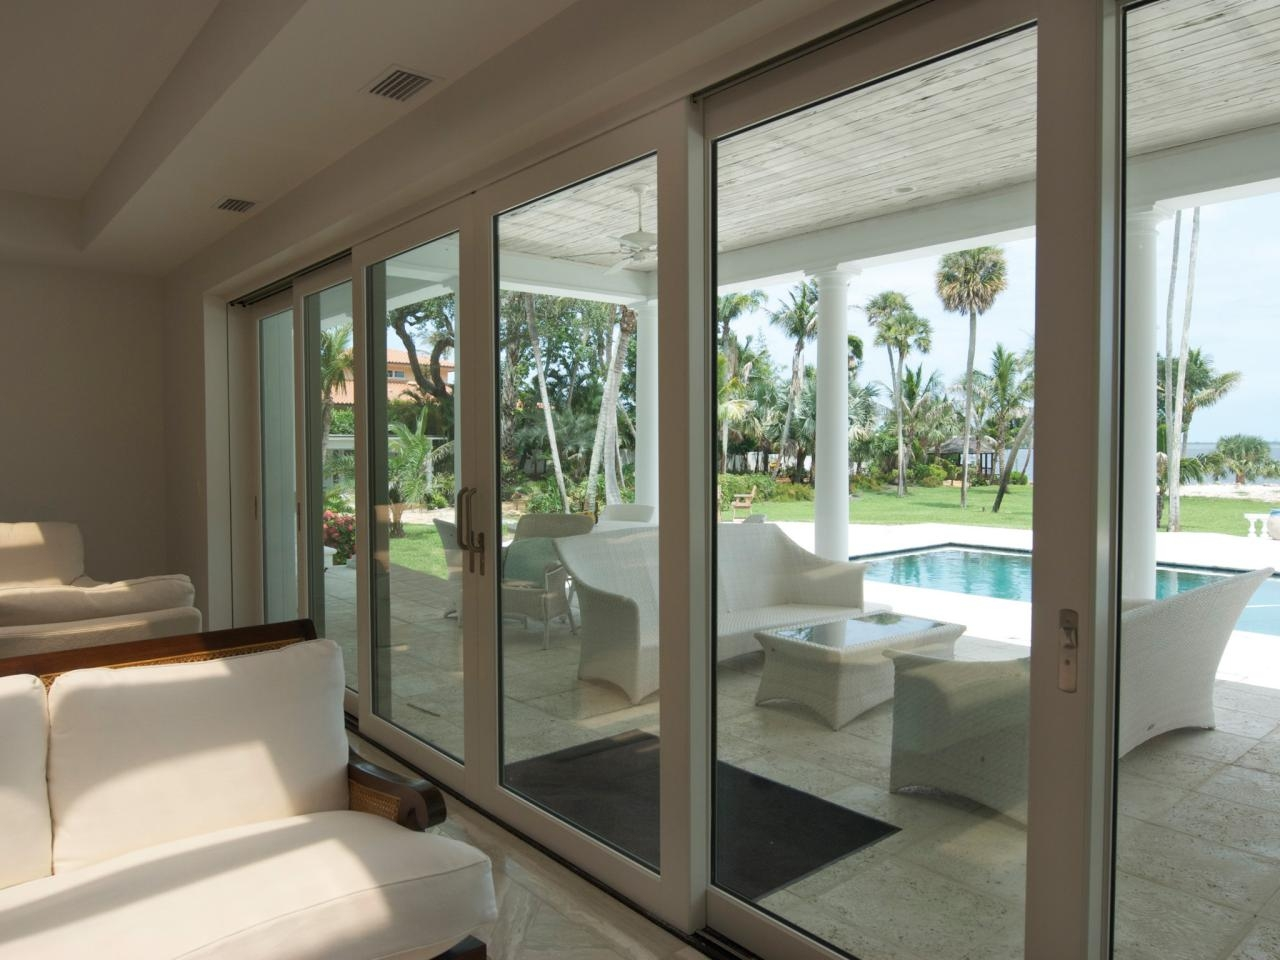 Triple Pane Sliding Glass Doors1280 X 960